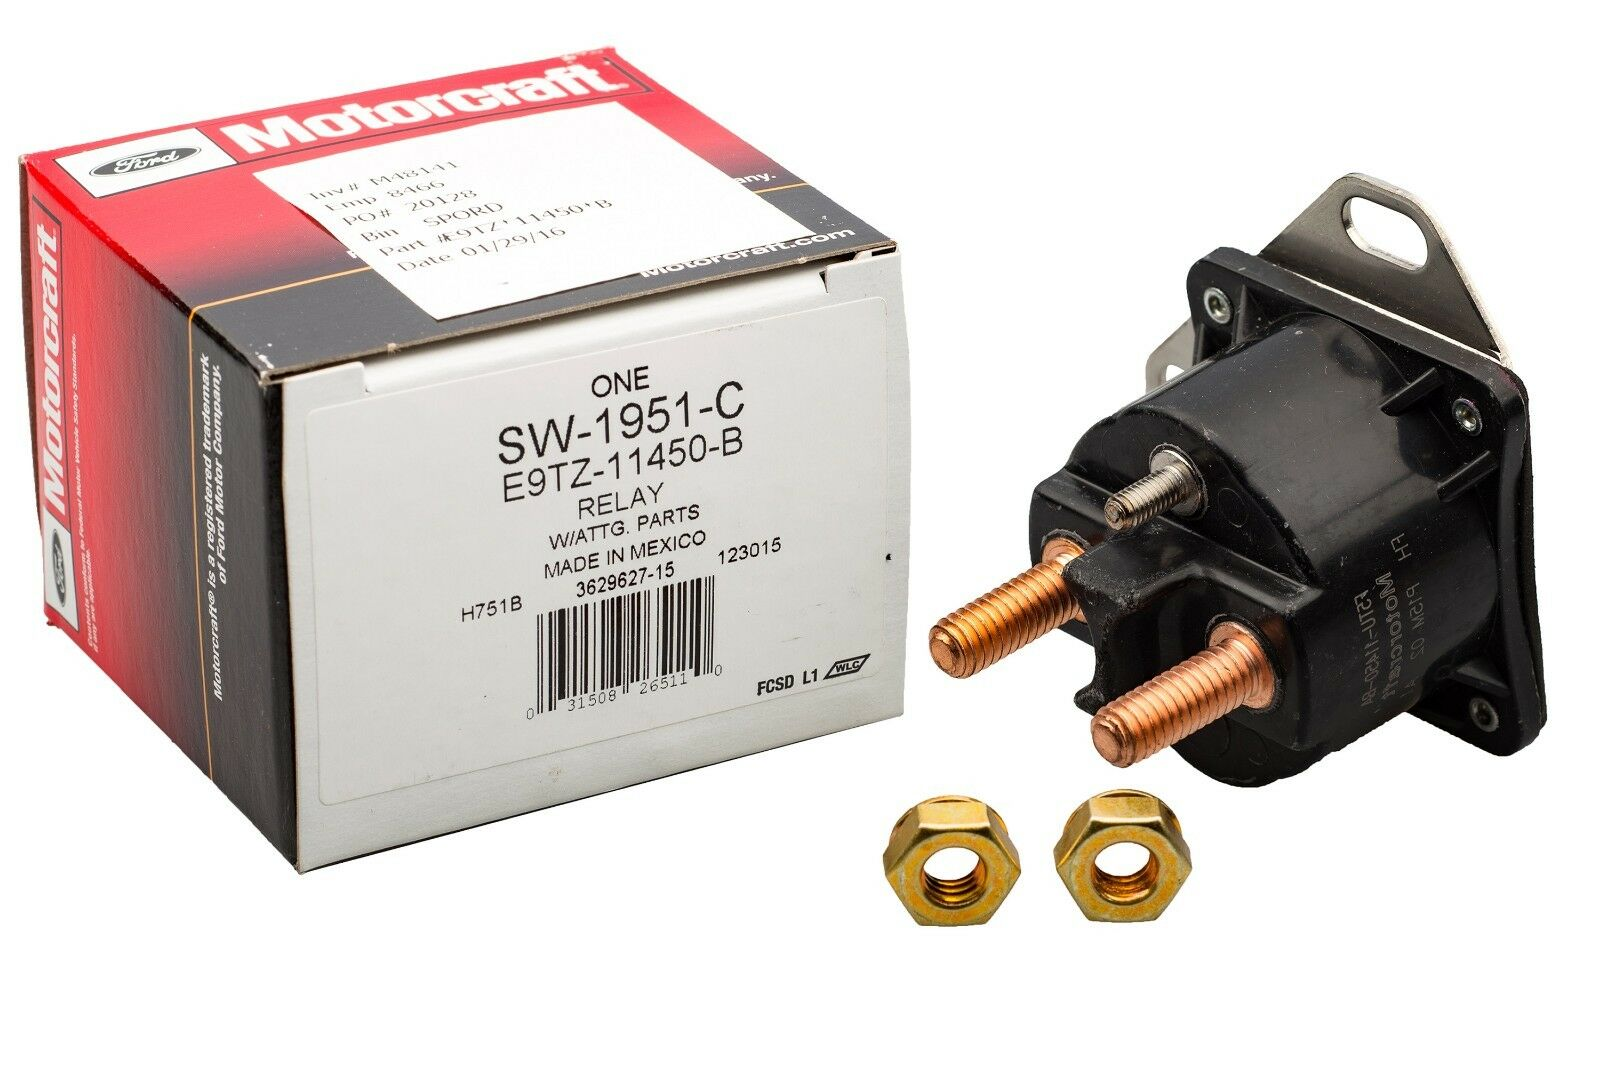 1995 Bmw 325i Starter Relay Location Ford Mustang Solenoid Switch Oem New 1600x1068